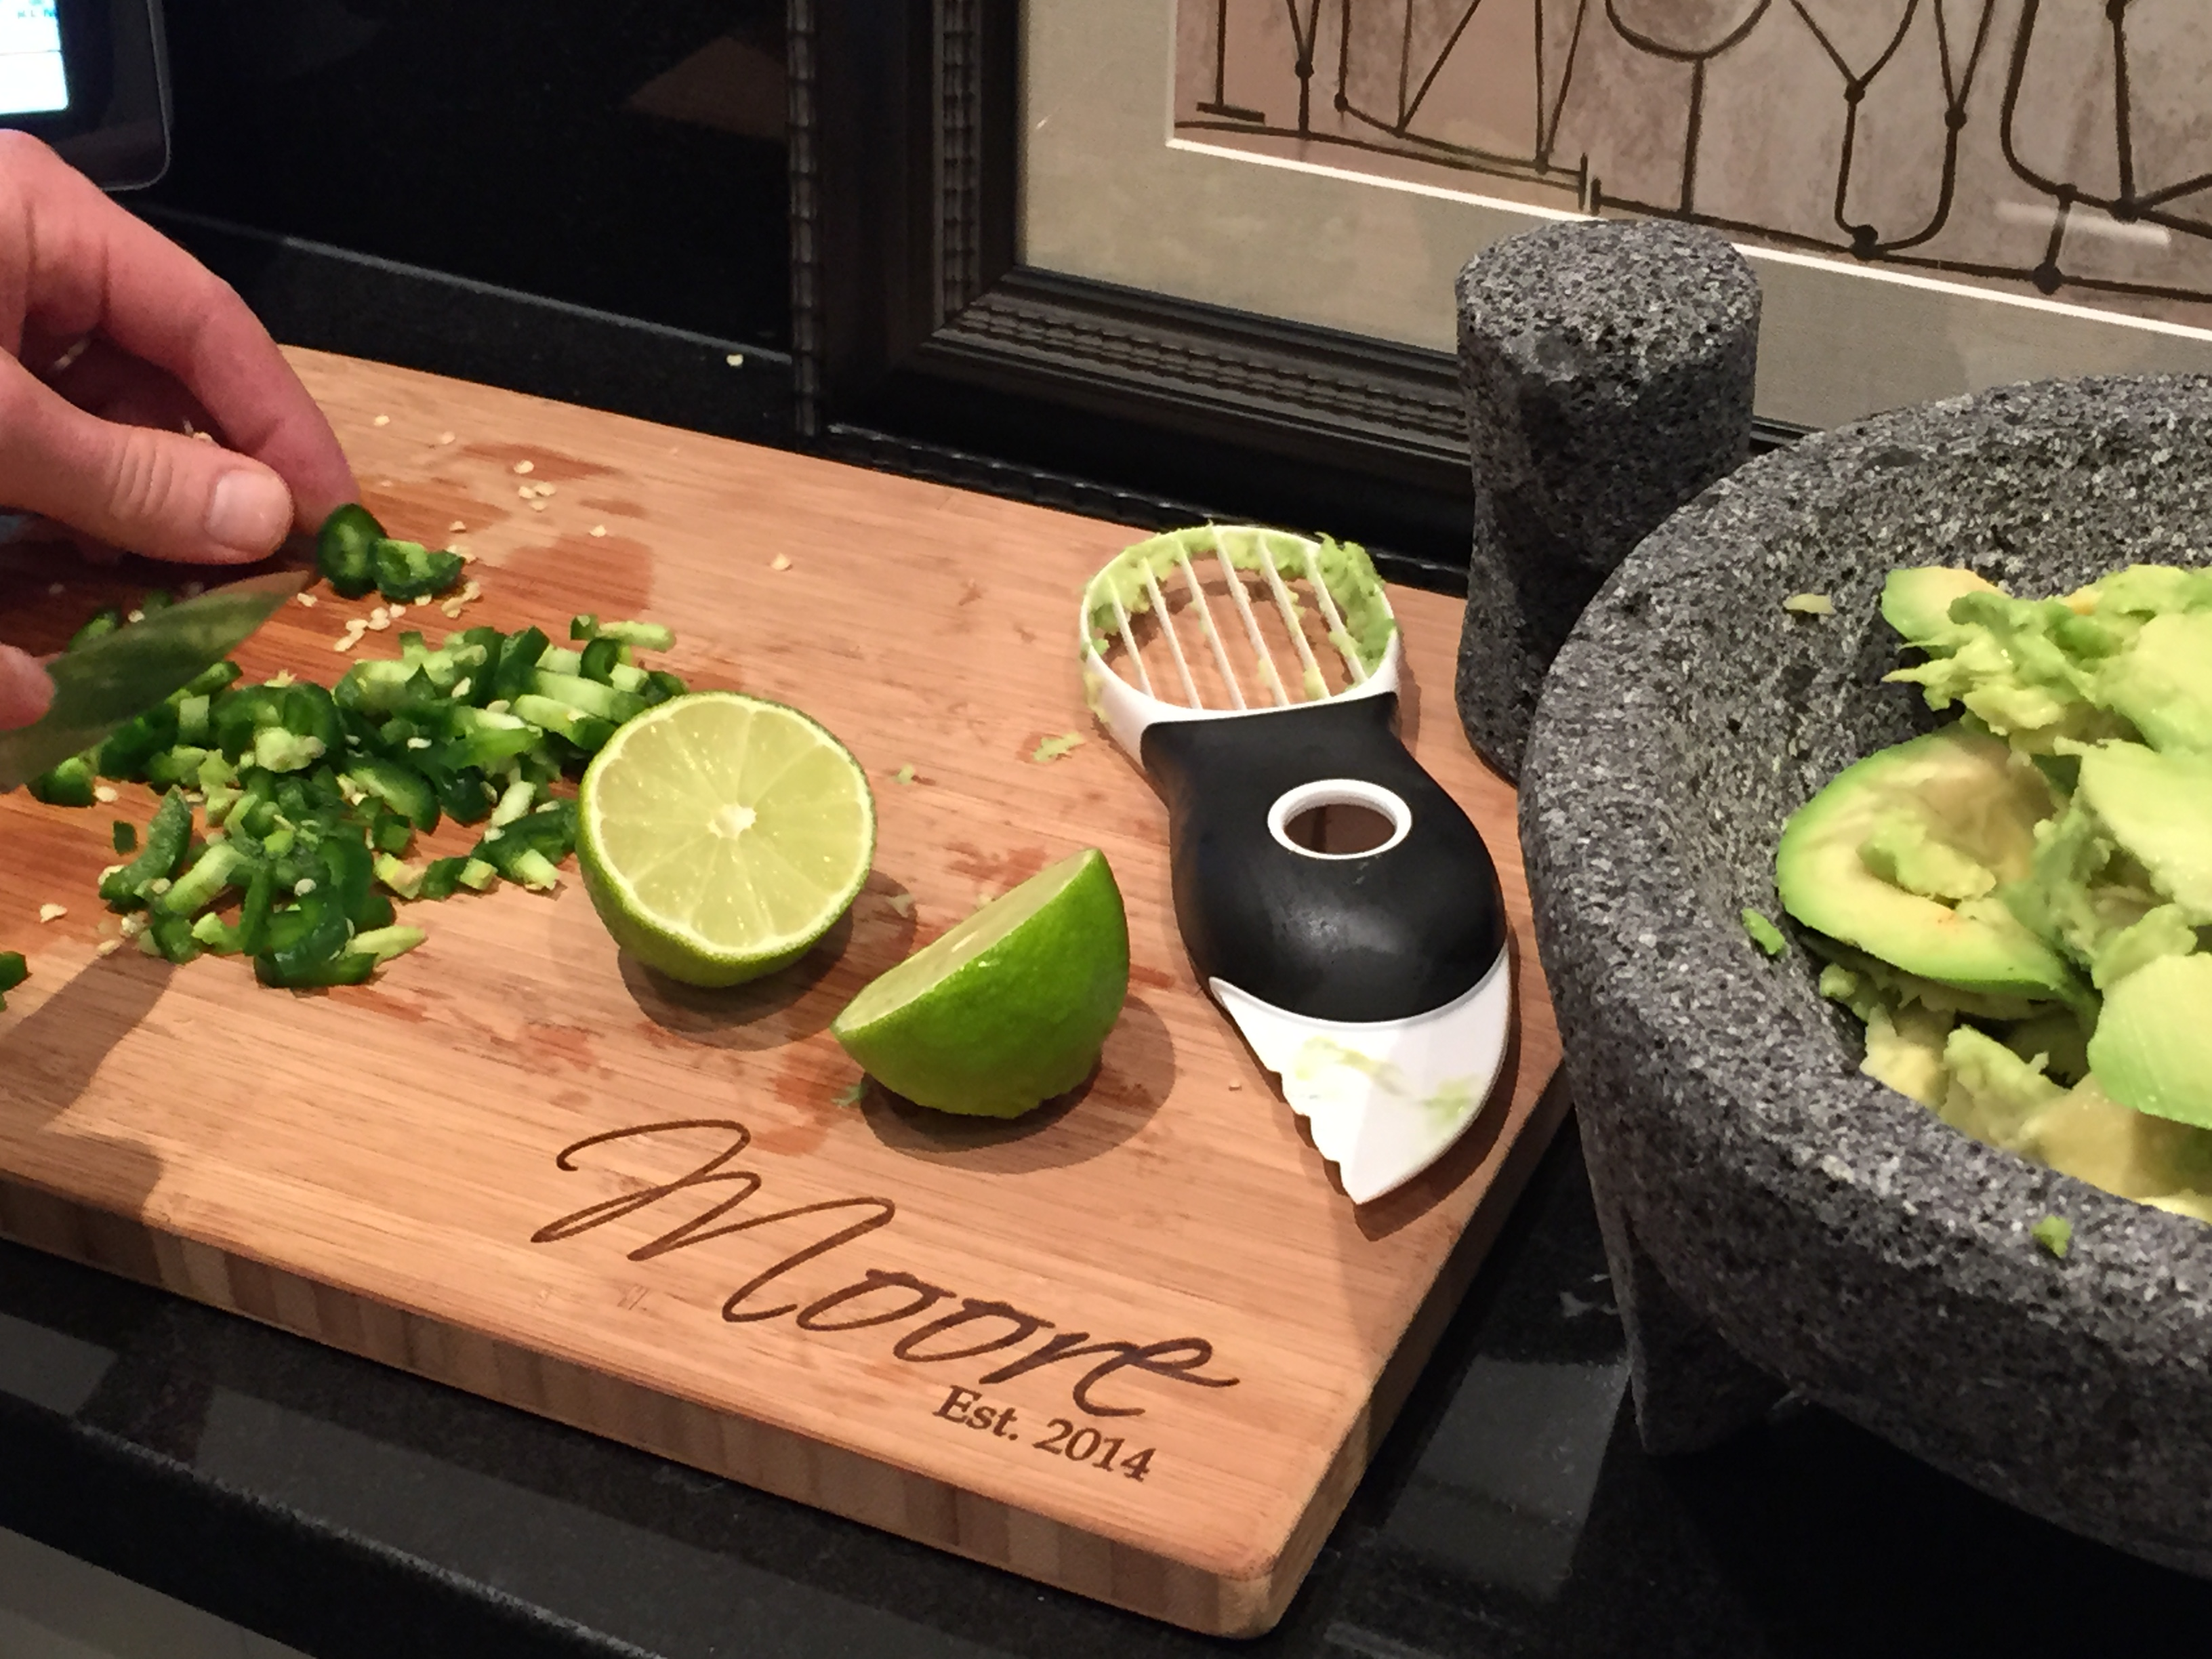 Avocado with Molcajete